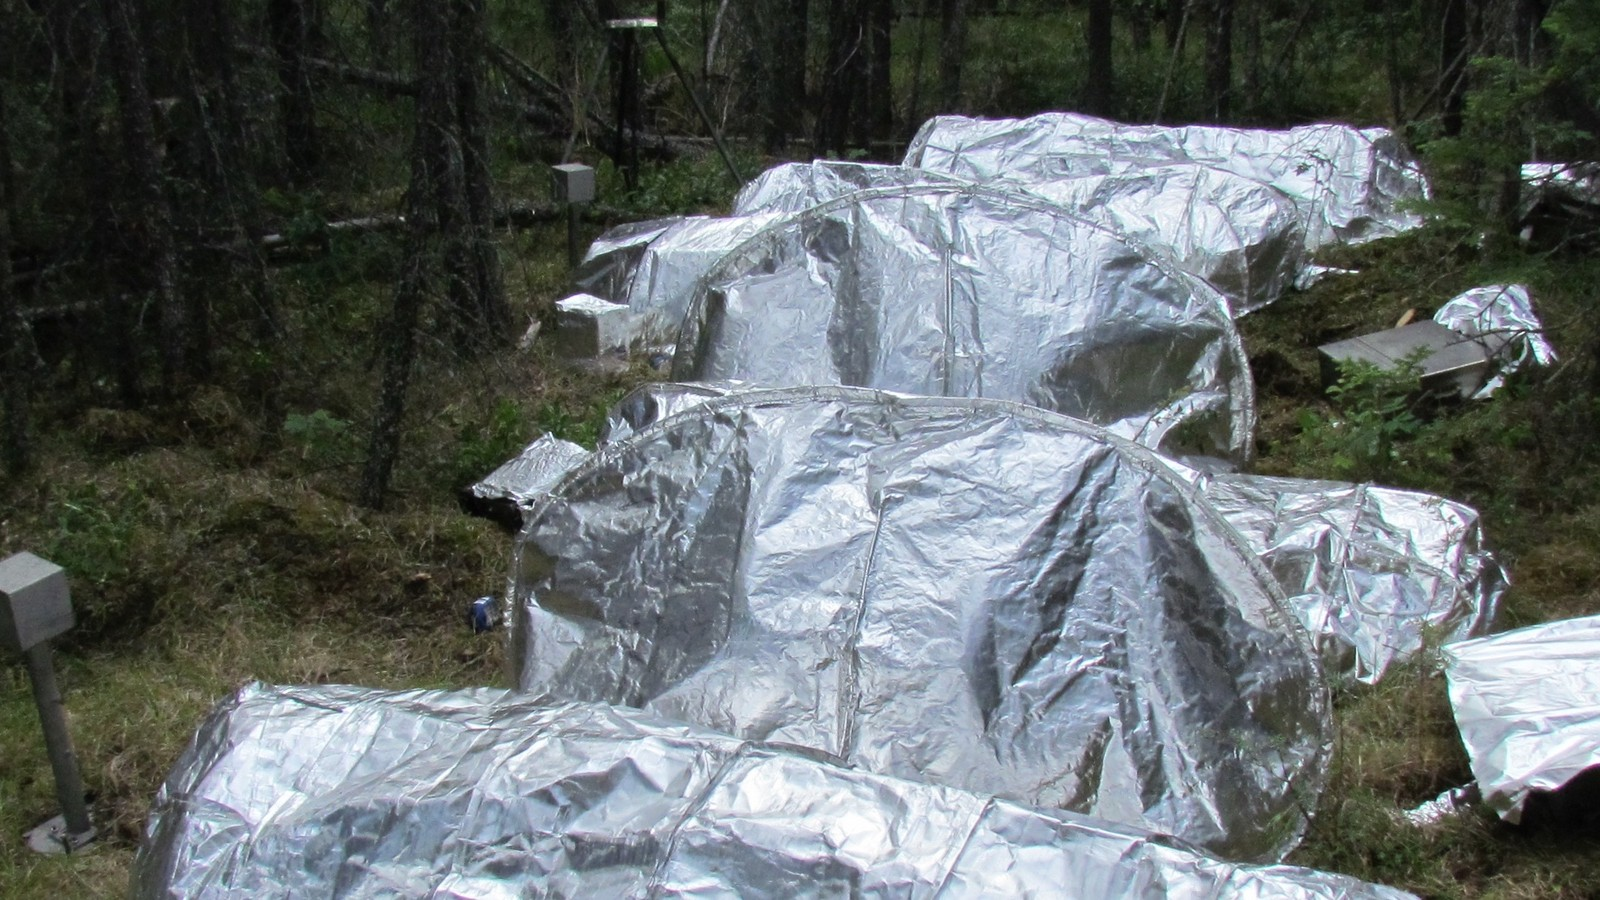 NASA Is Testing Next-Generation Fire Shelters at a Burn Site In Northern Canada